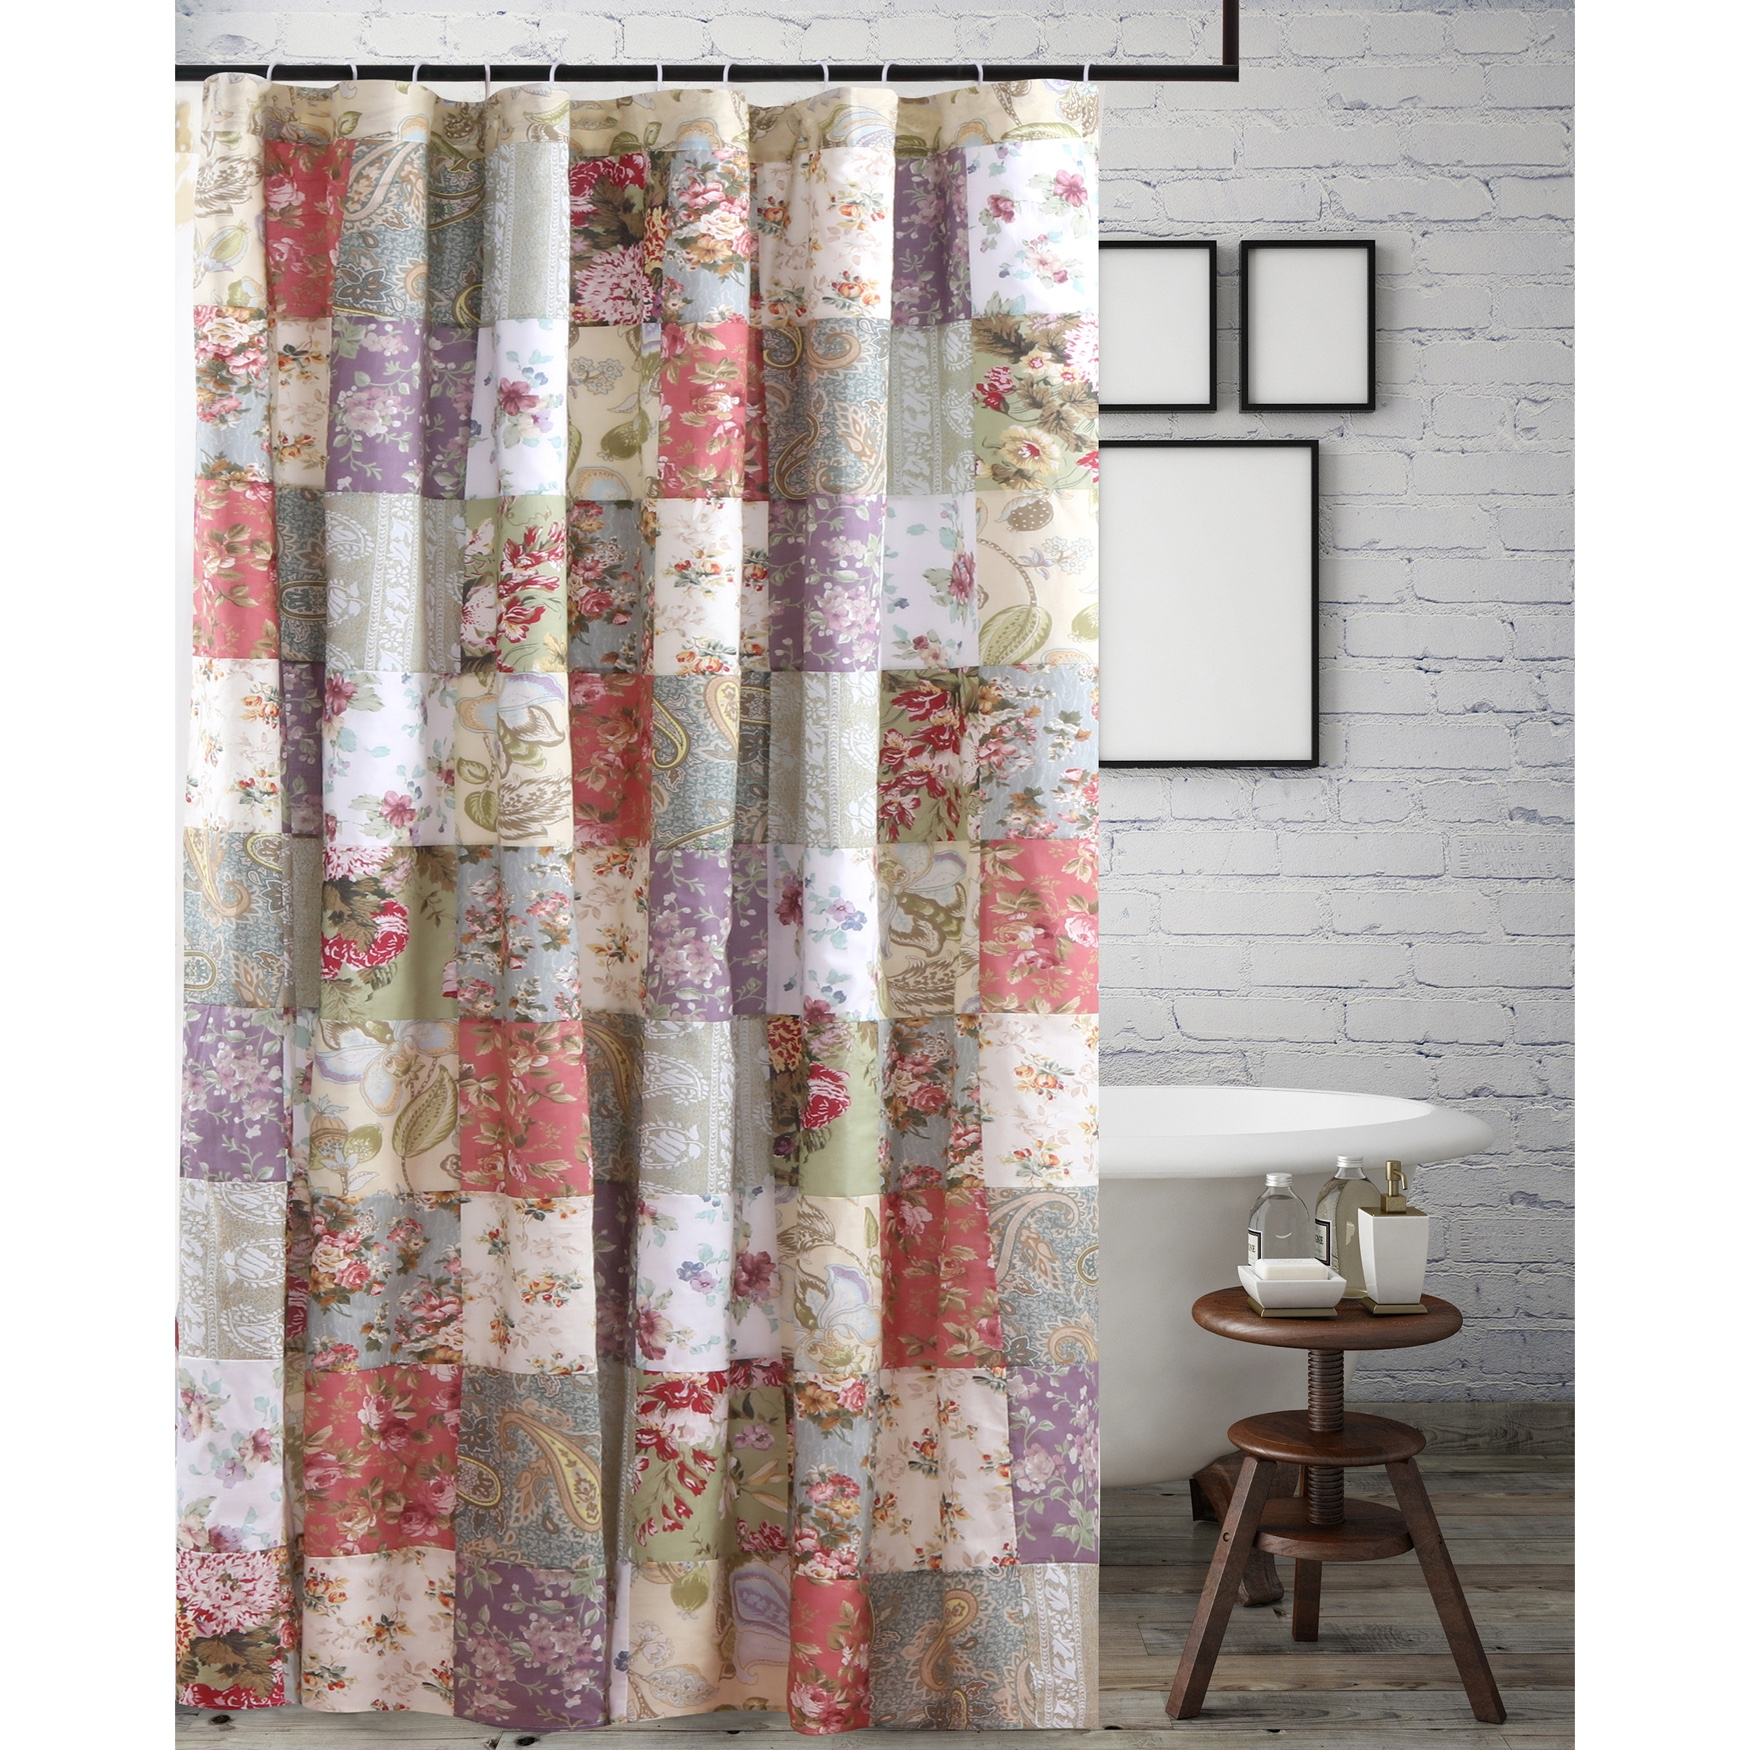 Blooming Prairie Shower Curtain by Greenland Home Fashions, MULTI